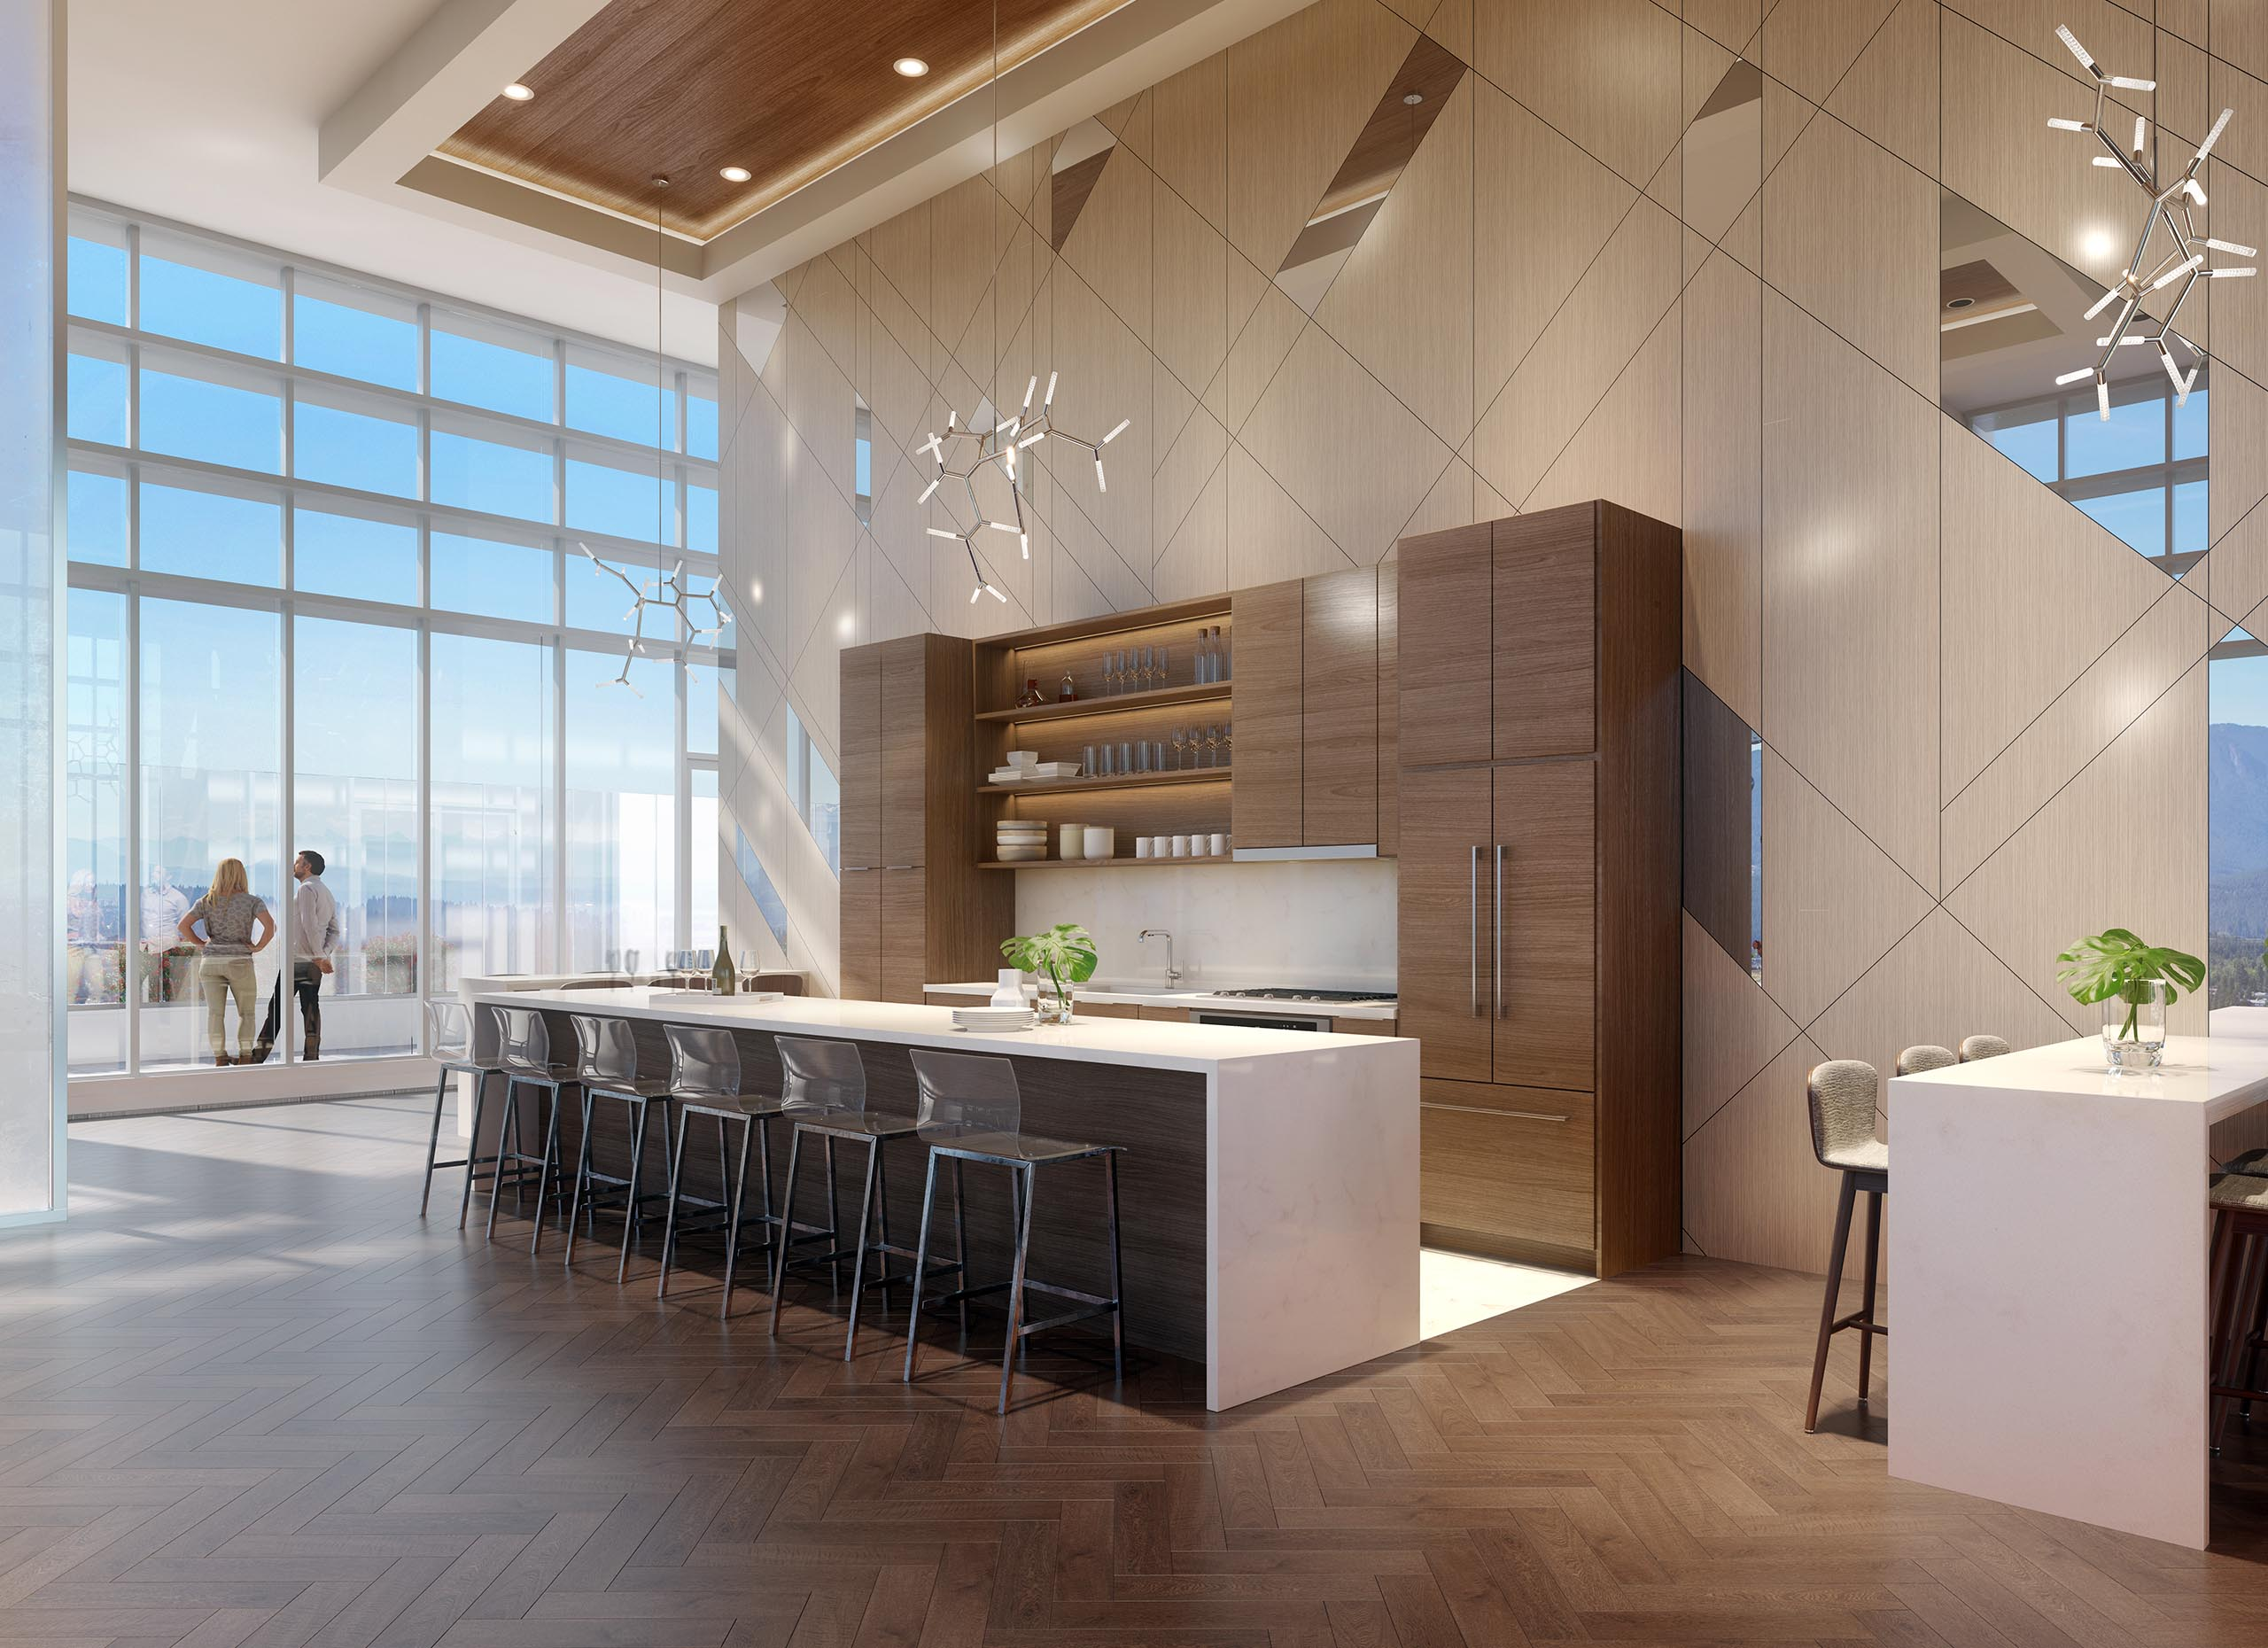 Skylounge Kitchen